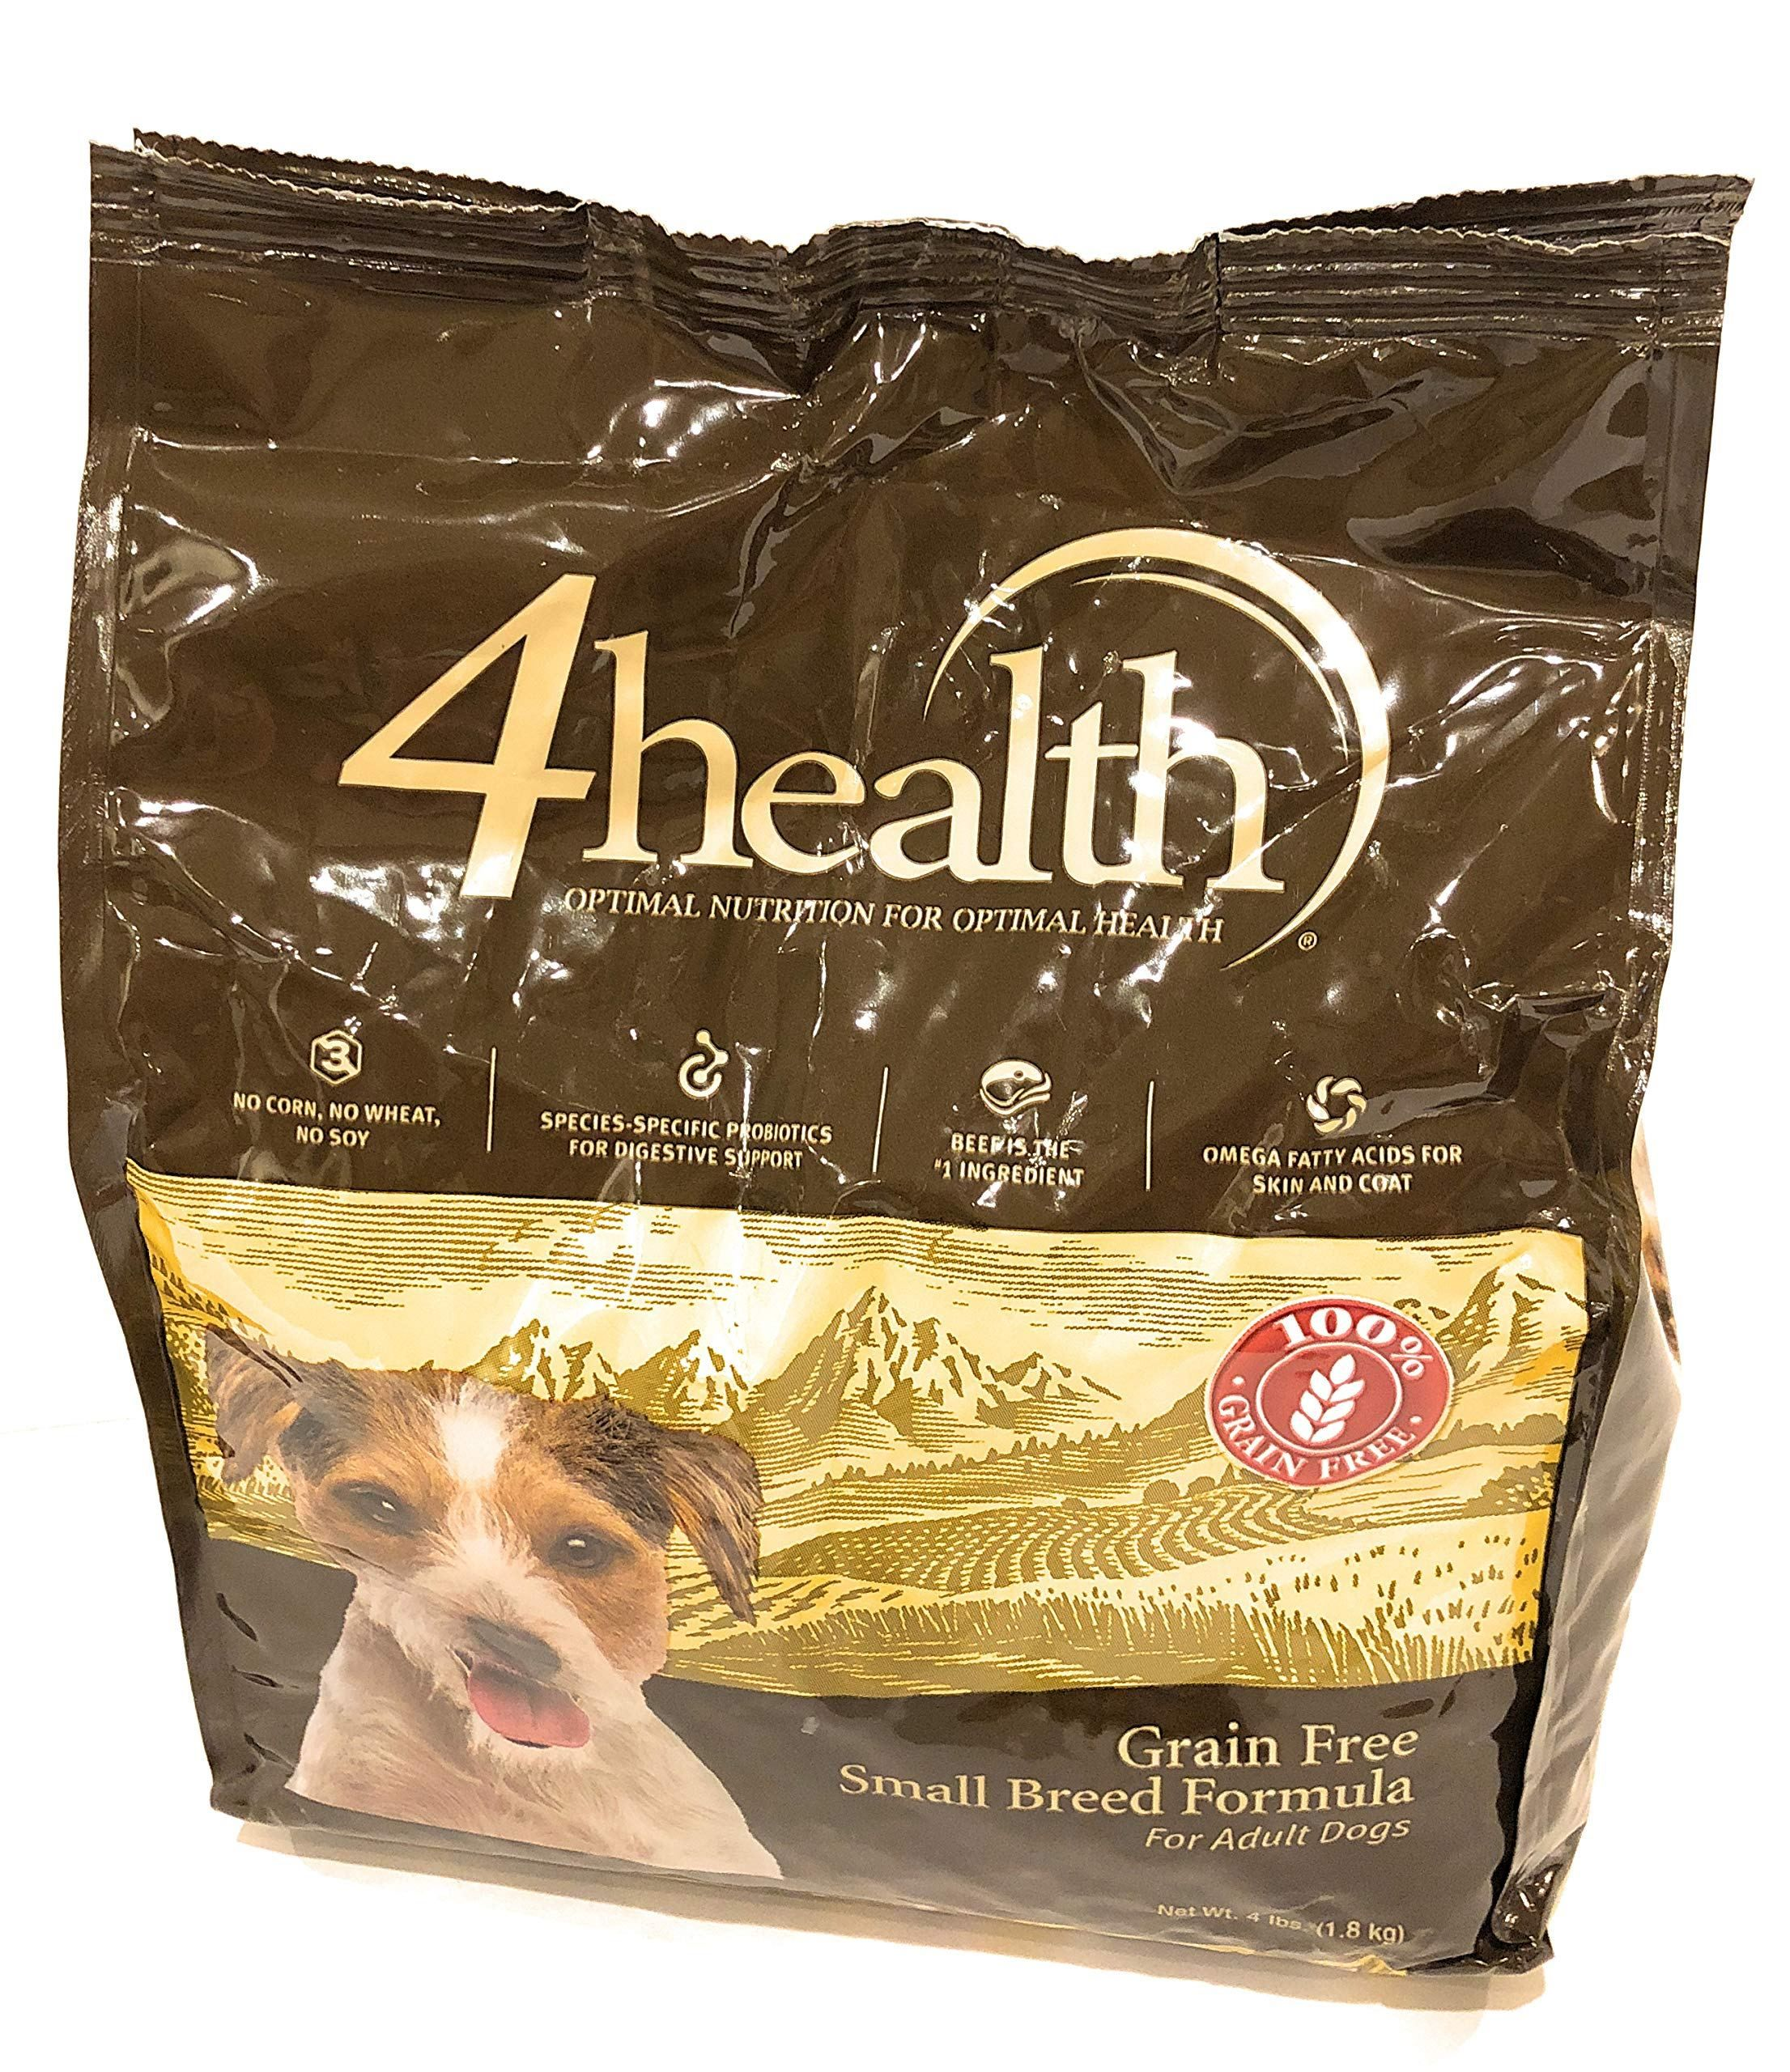 4health Tractor Supply Company, Small Breed Formula with